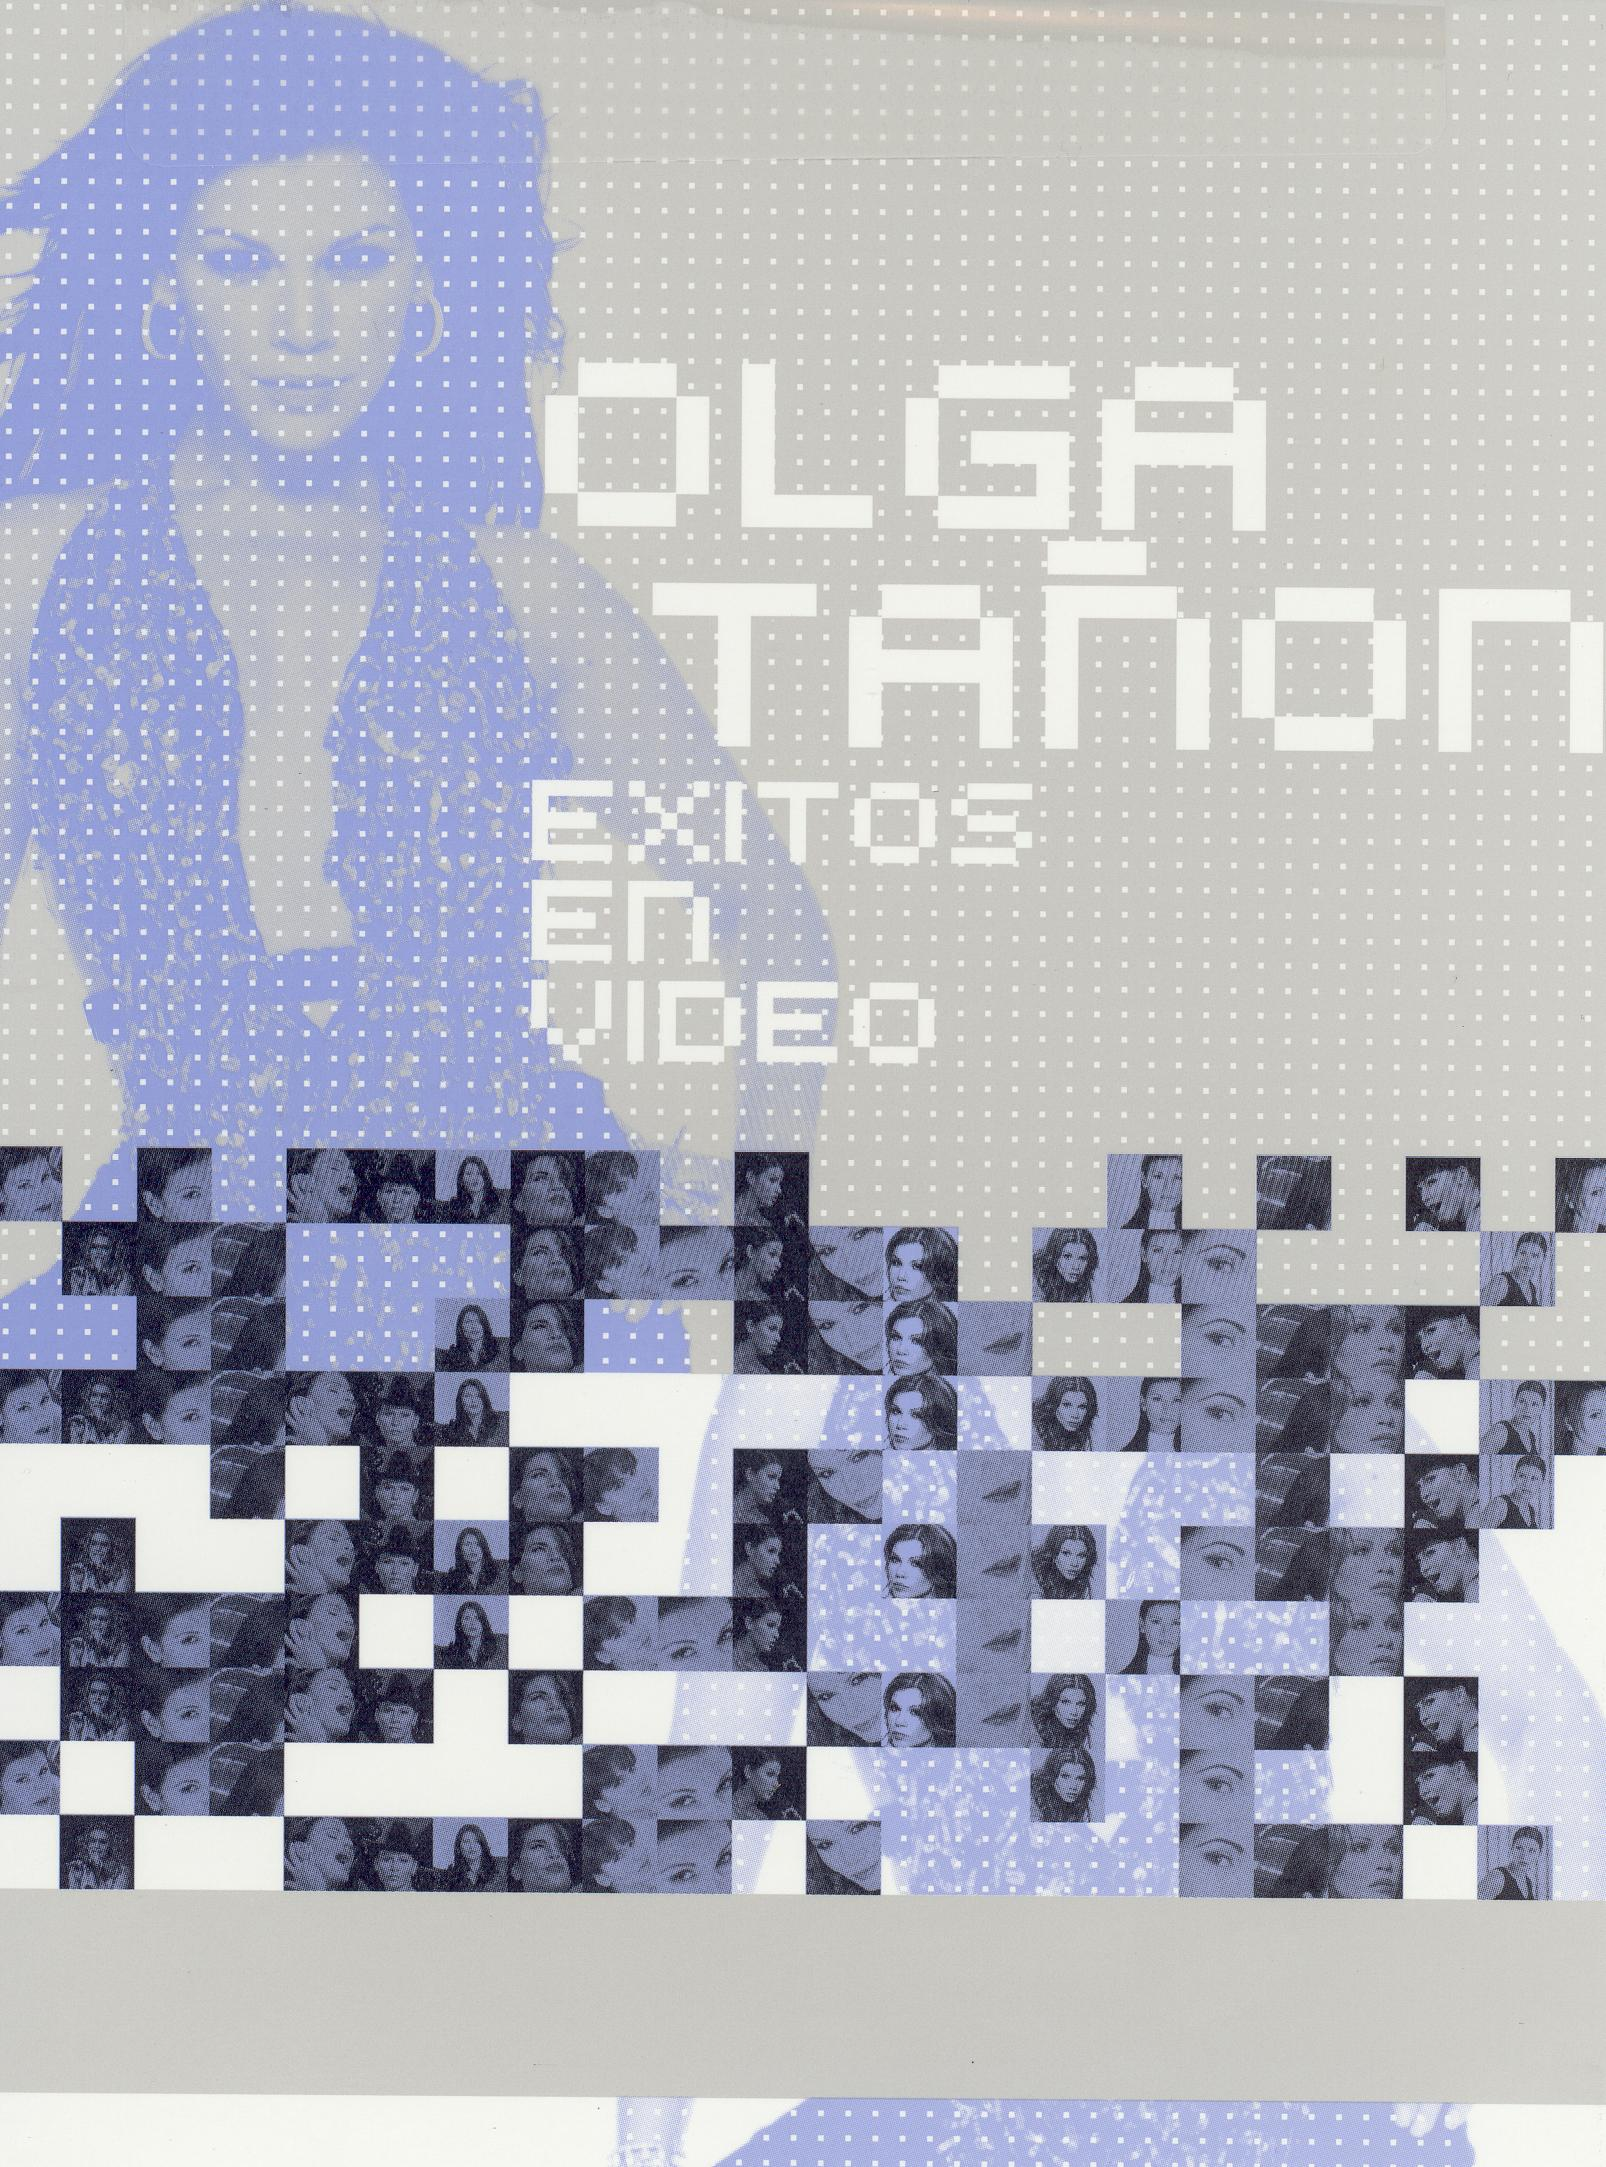 Olga Tanon: Exitos En Video